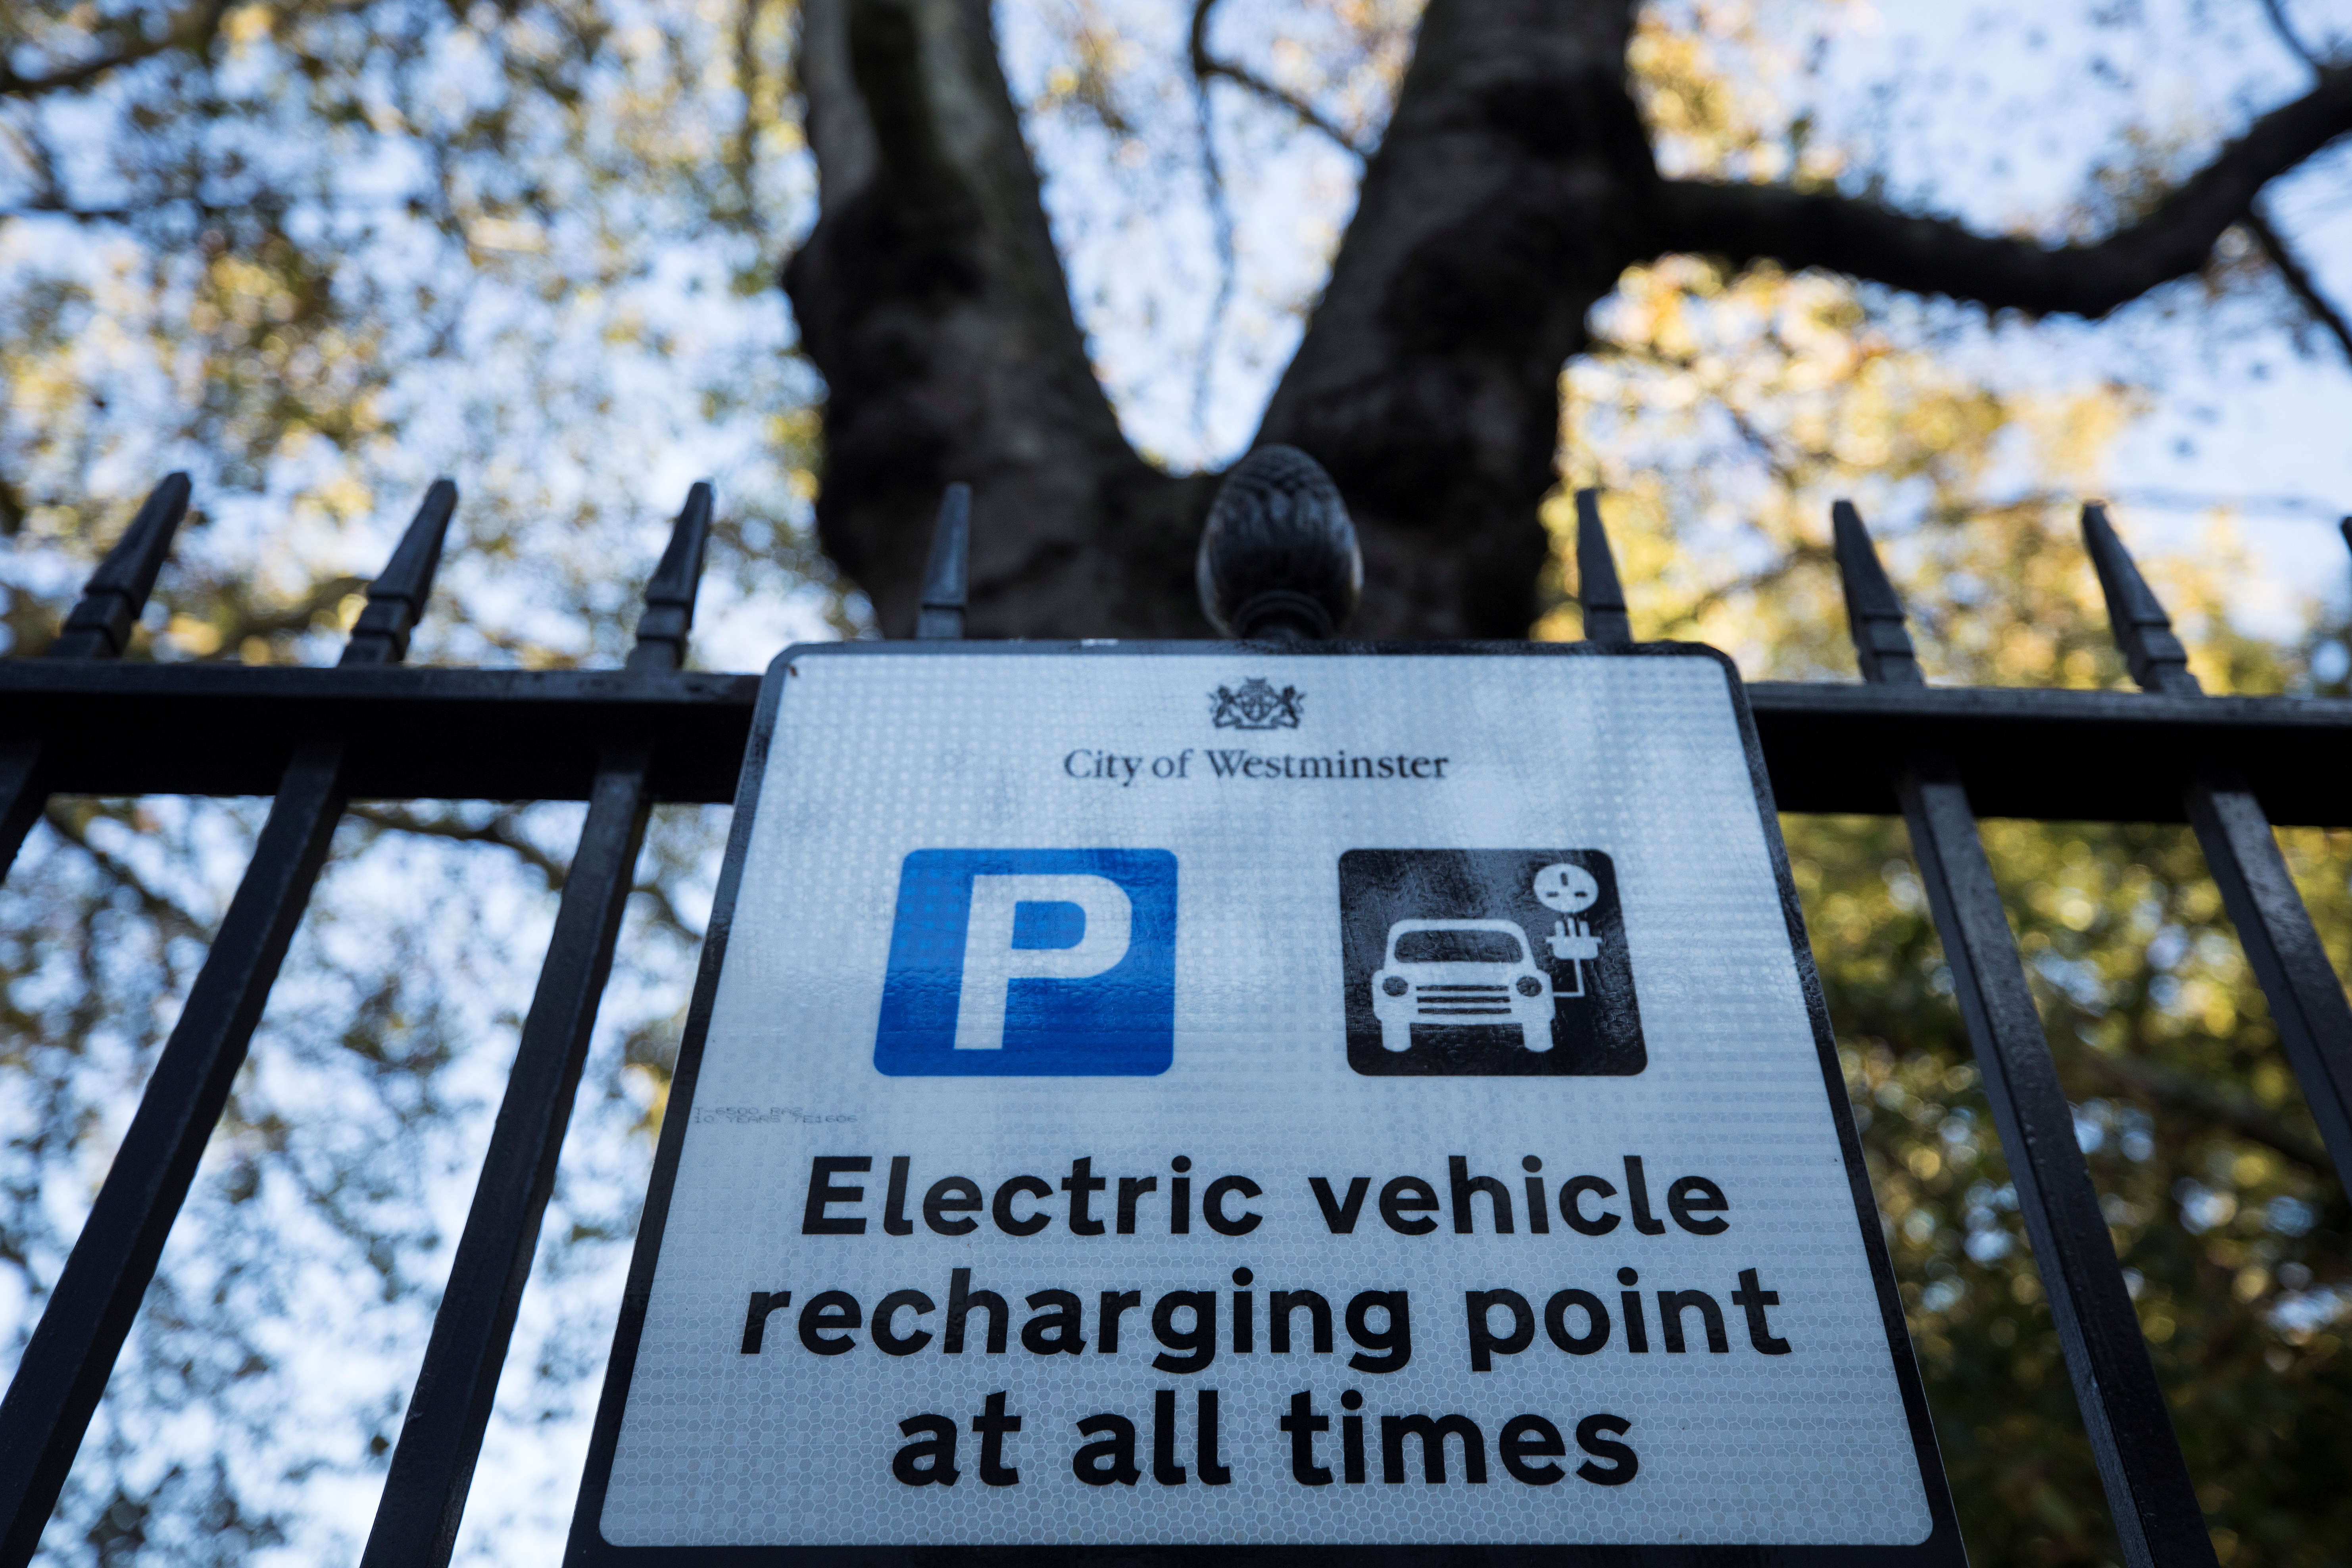 A sign for electric charging points can be seen on display in London, Britain, October 19, 2018. REUTERS/Simon Dawson